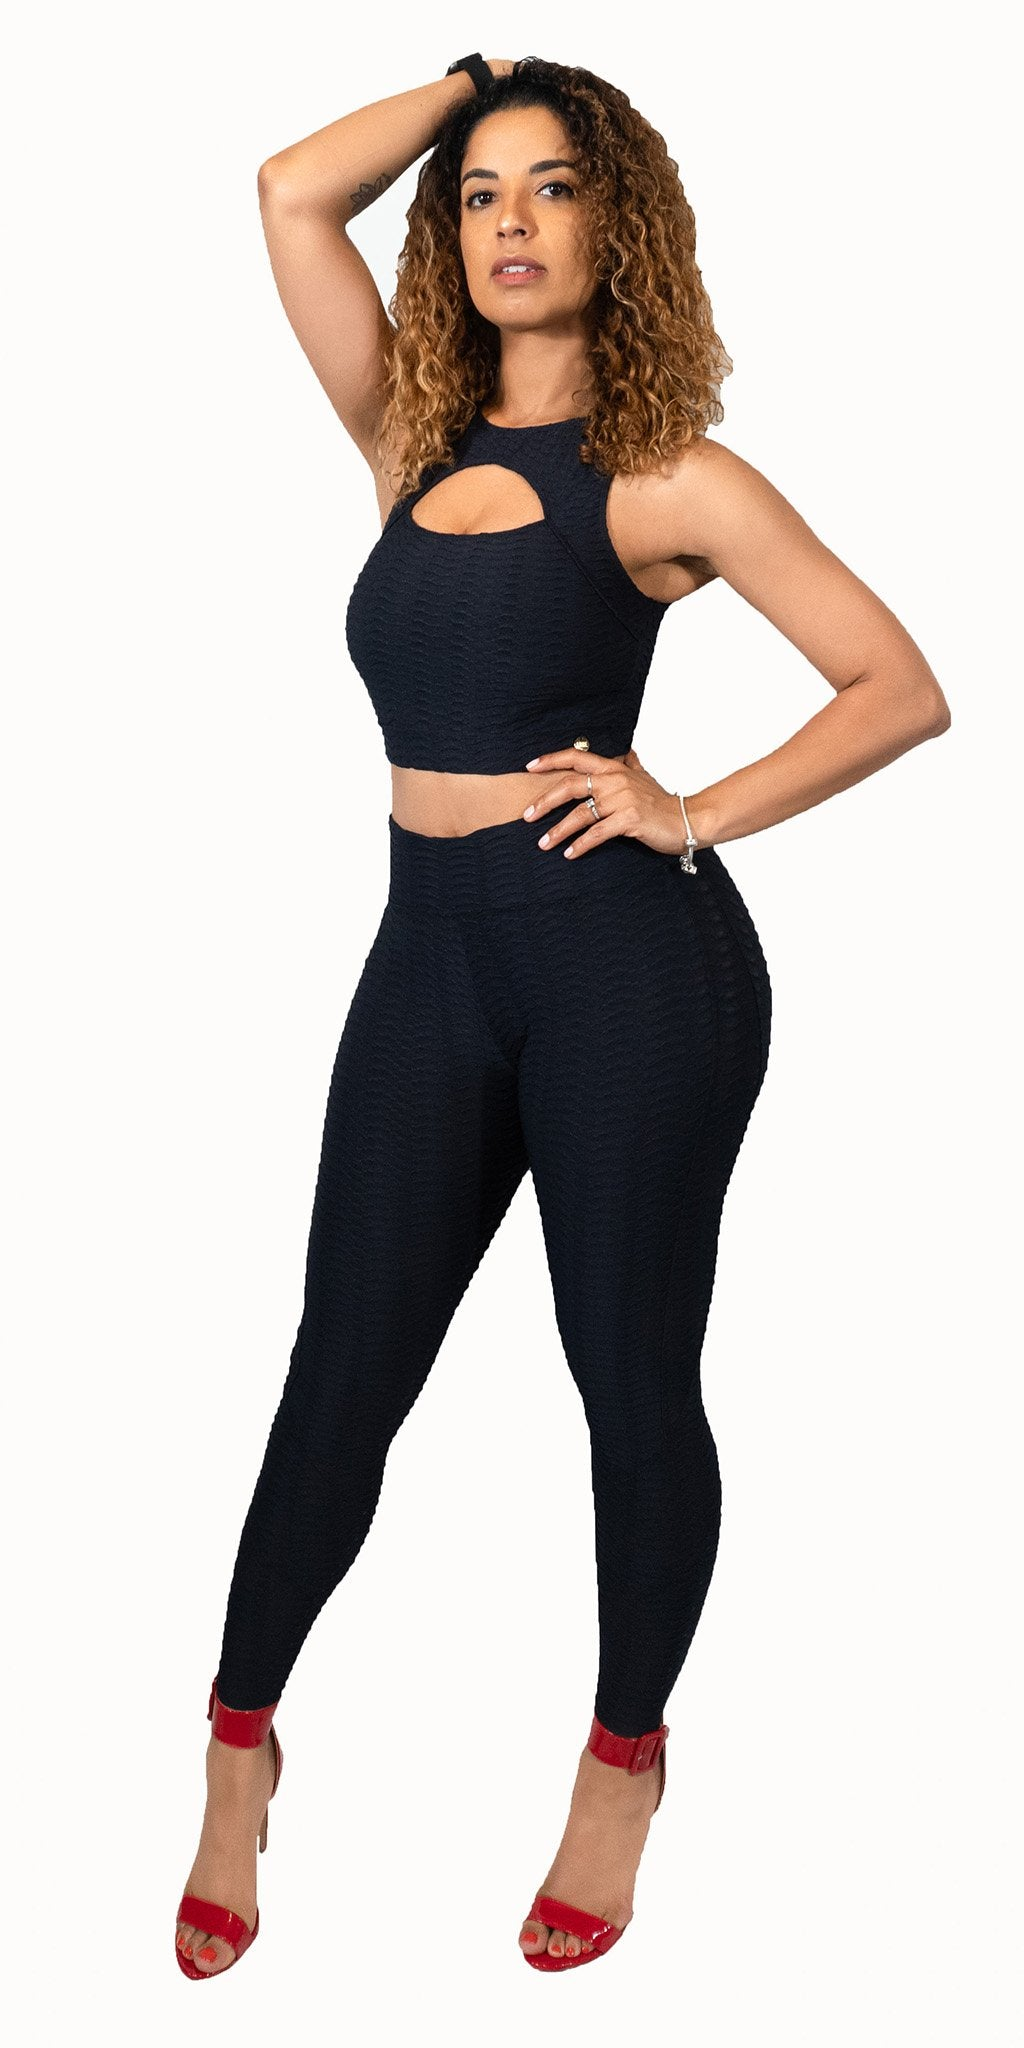 Love Yourself Leggings in Black by Alemana